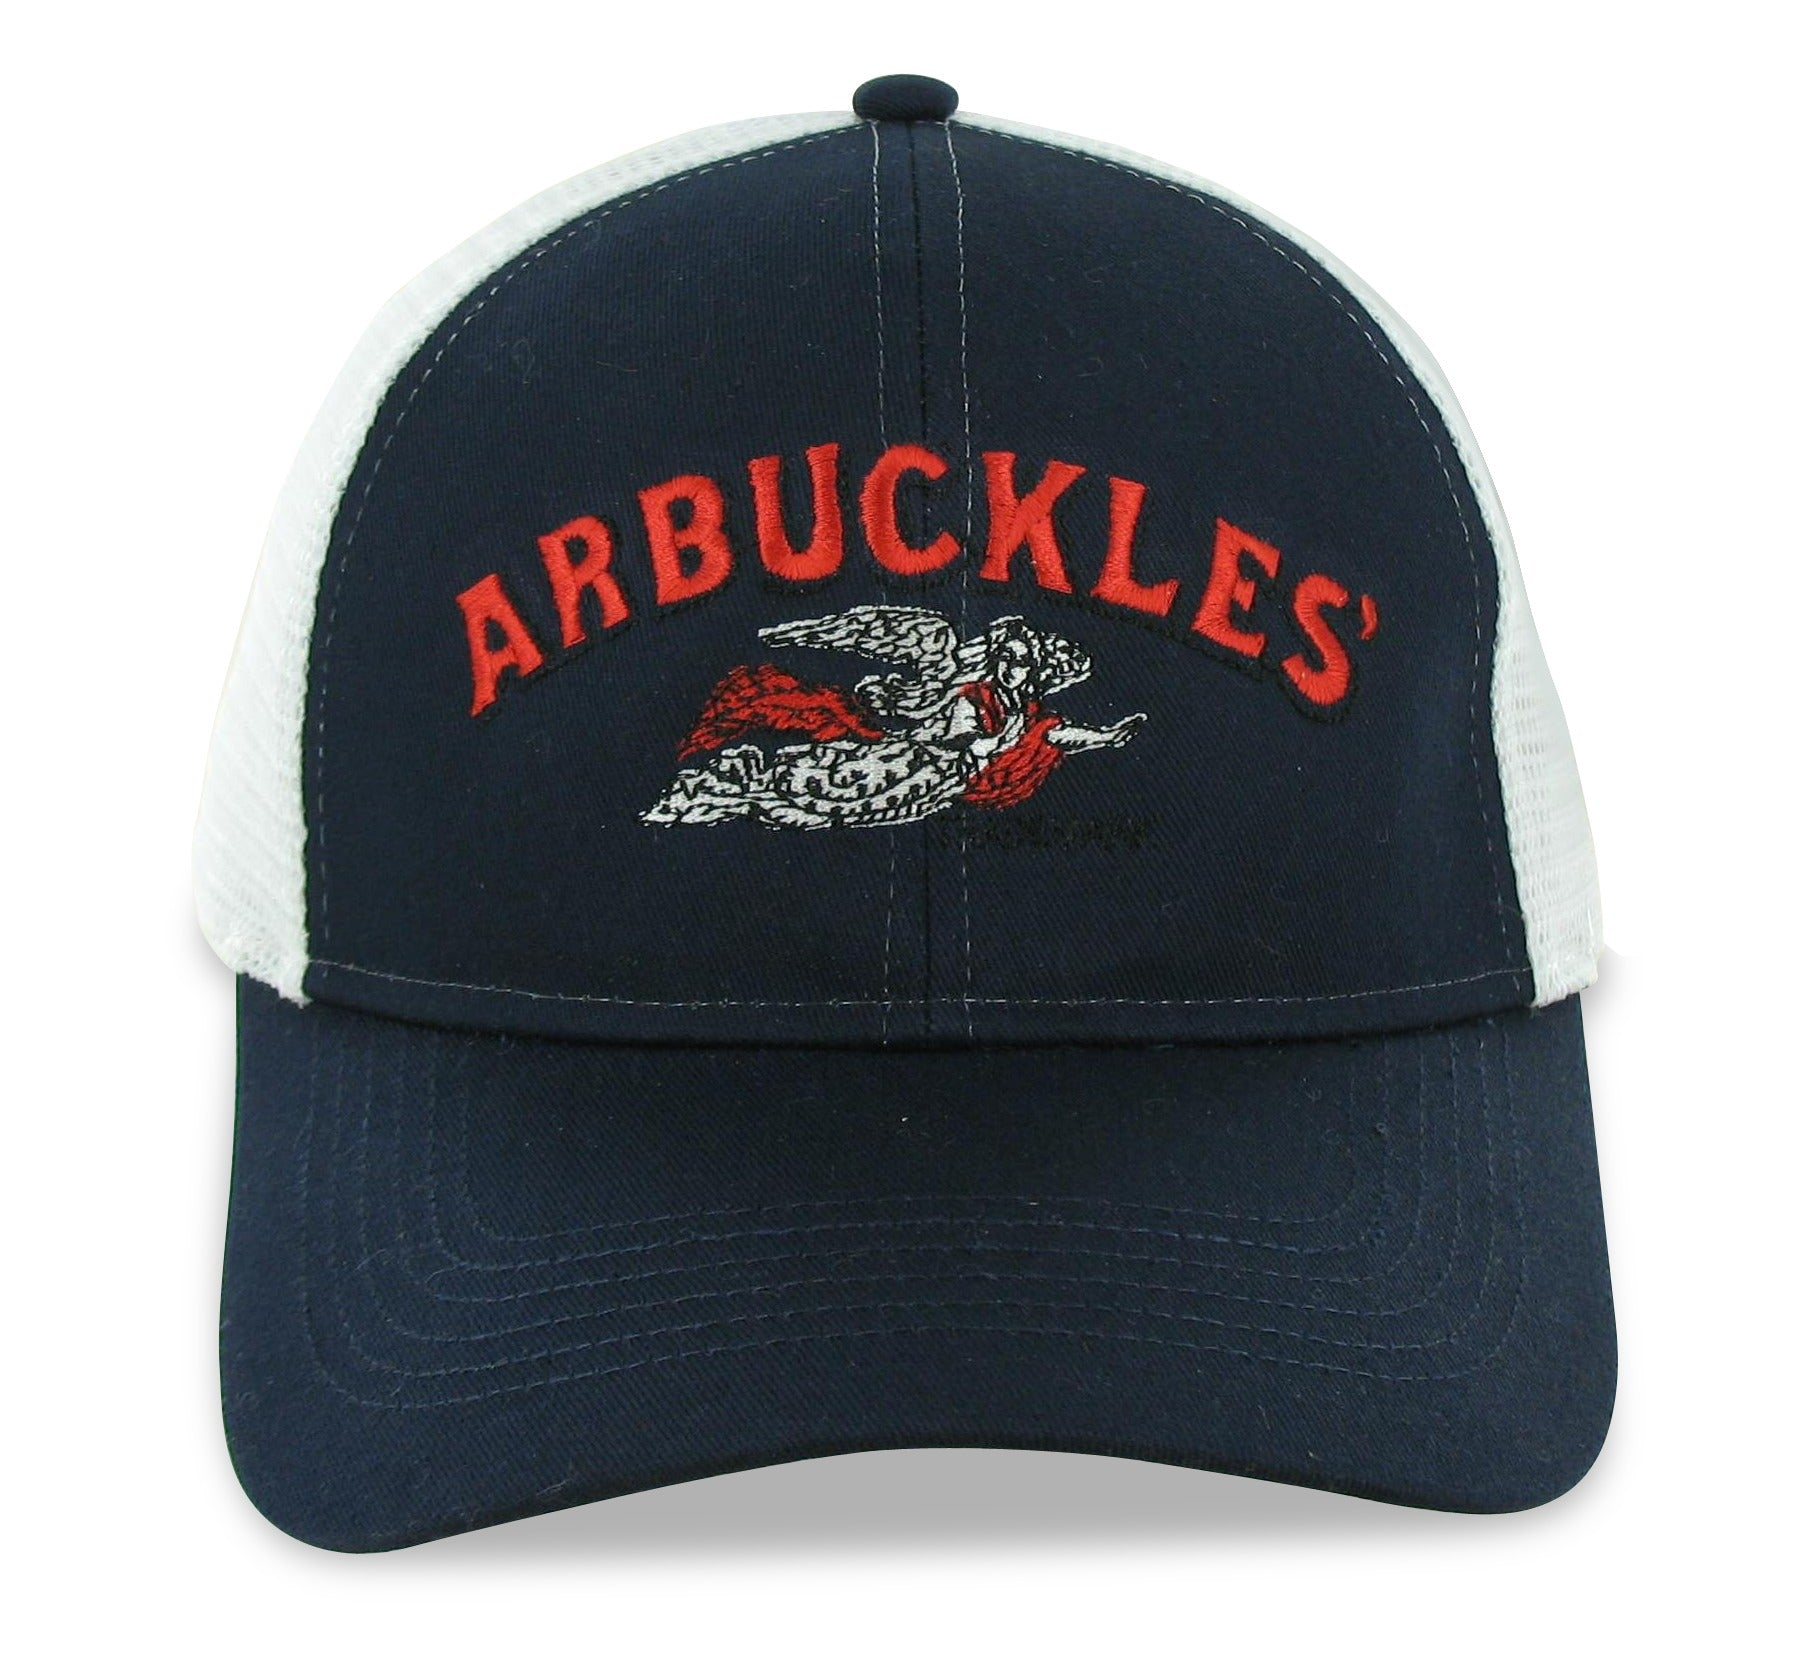 Arbuckle's Trucker Style Hat